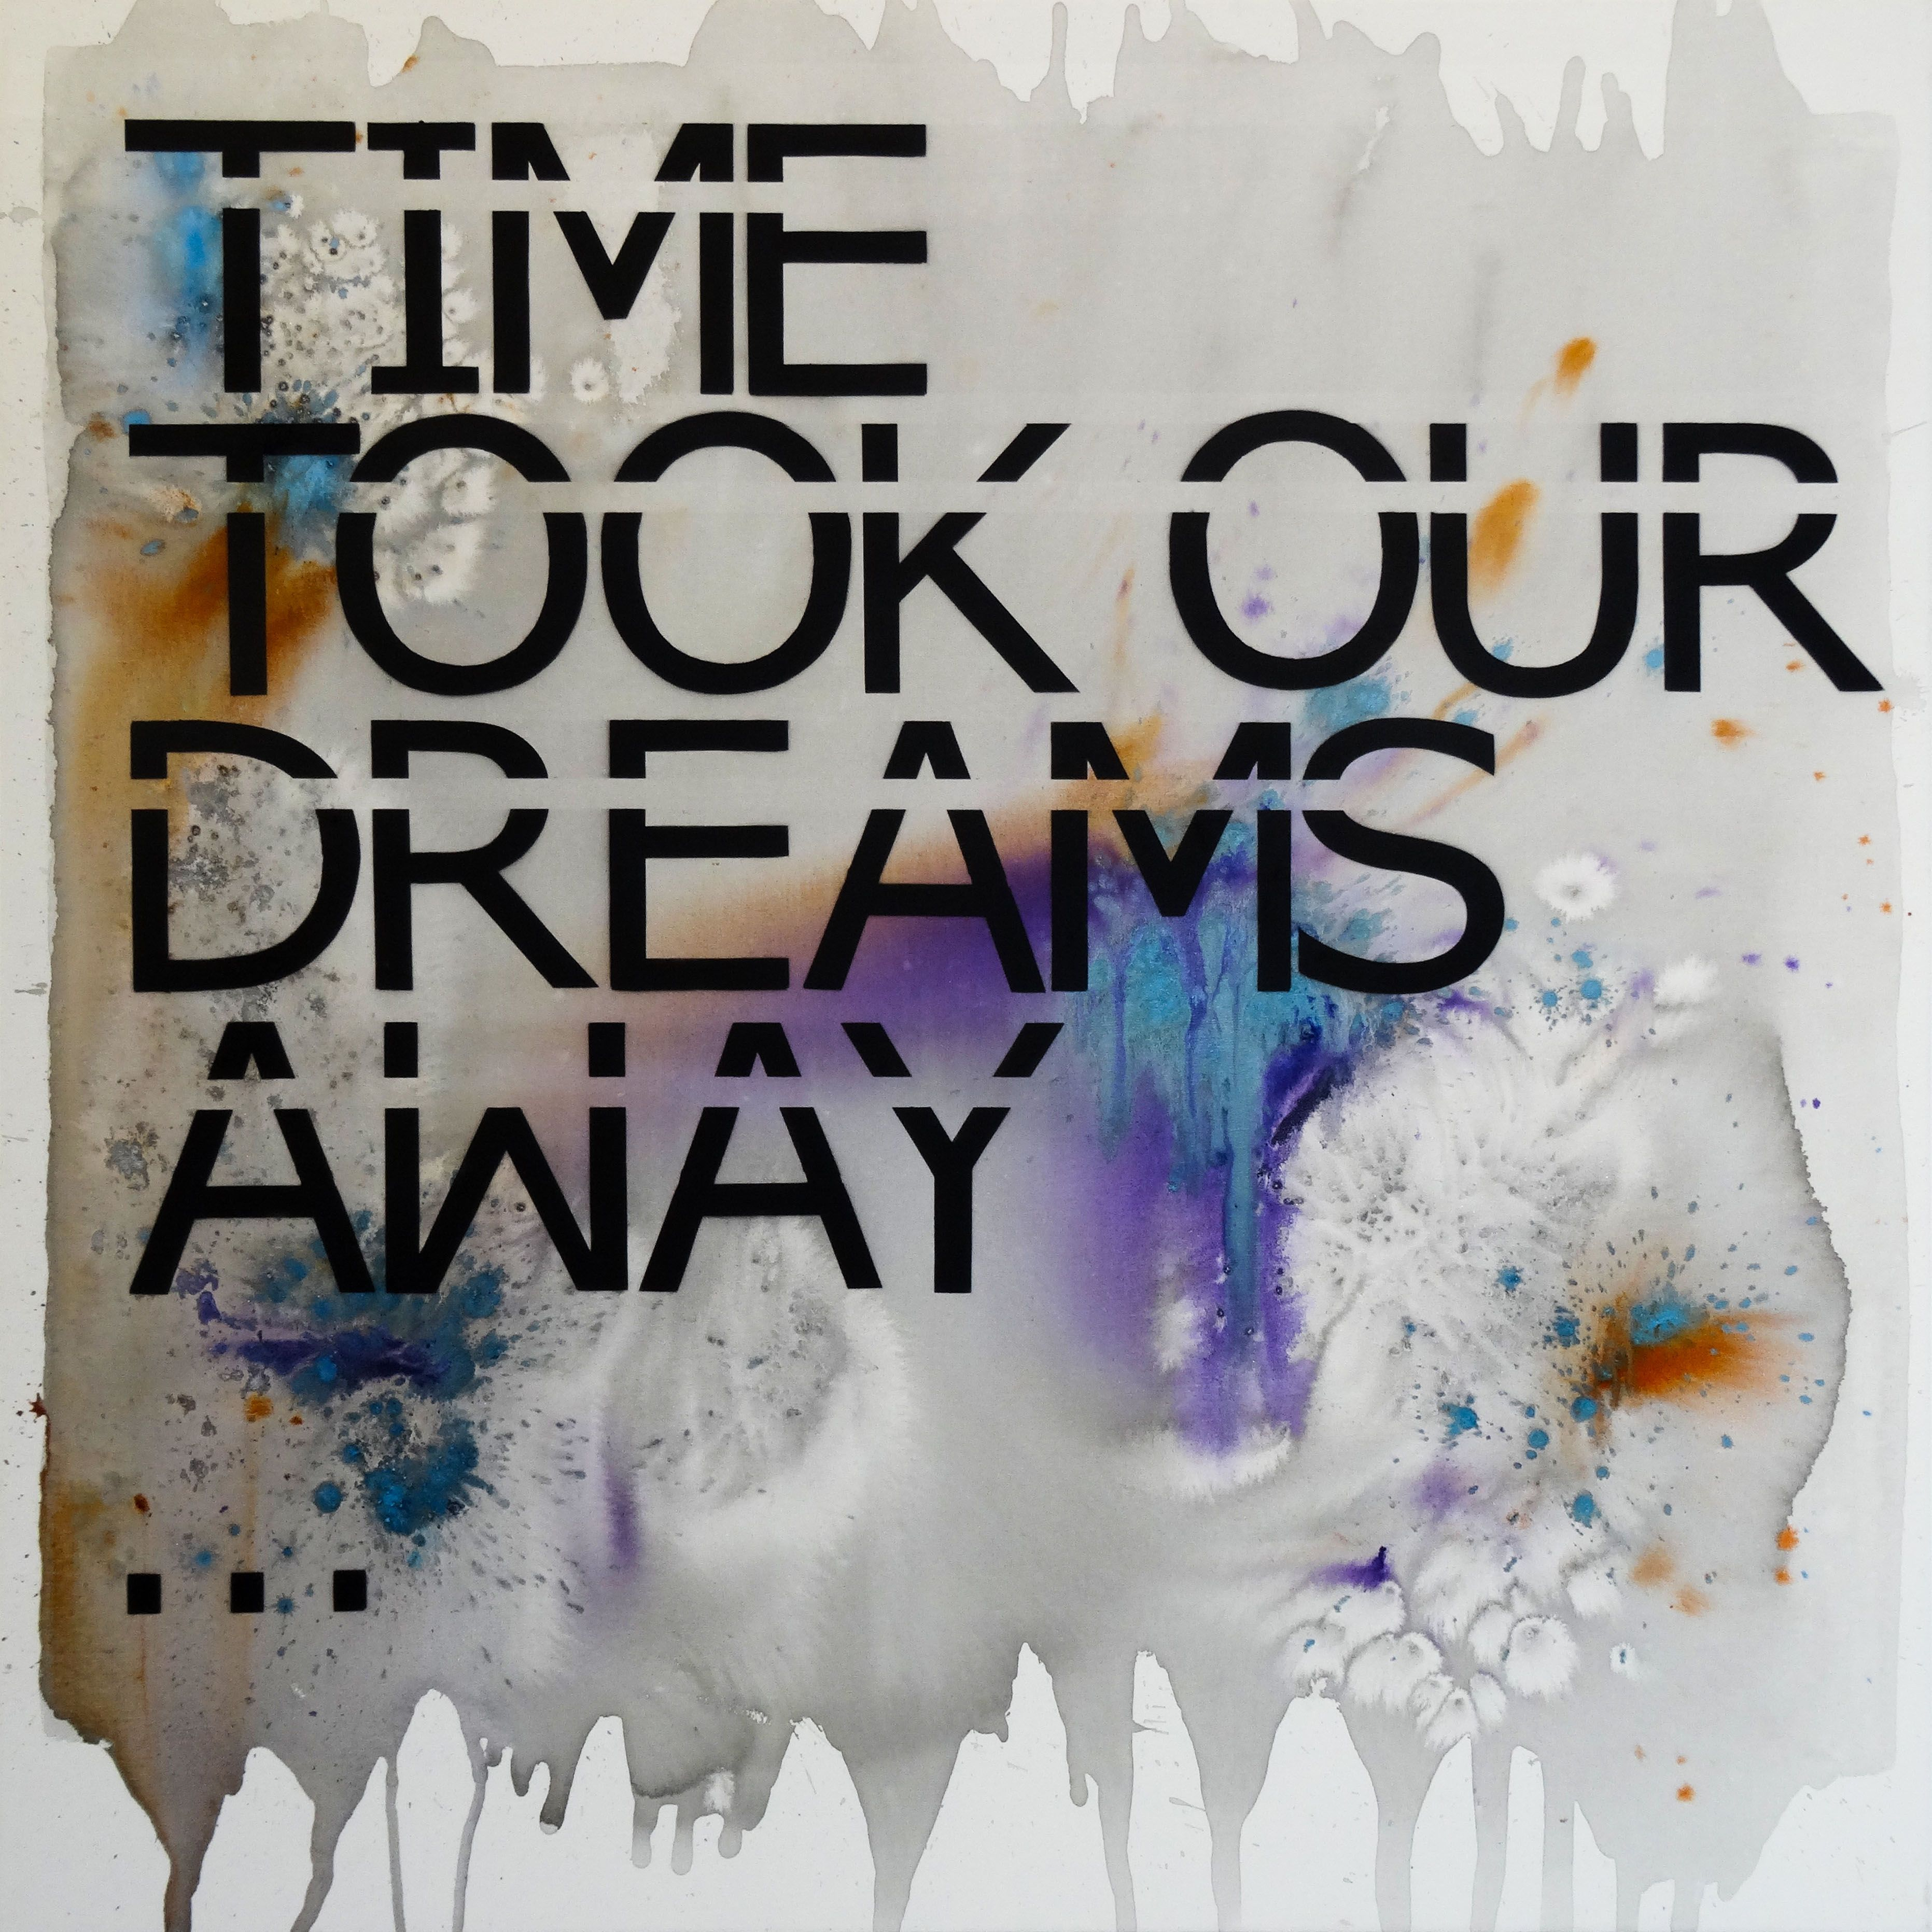 RERO Untitled (Time Took Our Dreams Away)